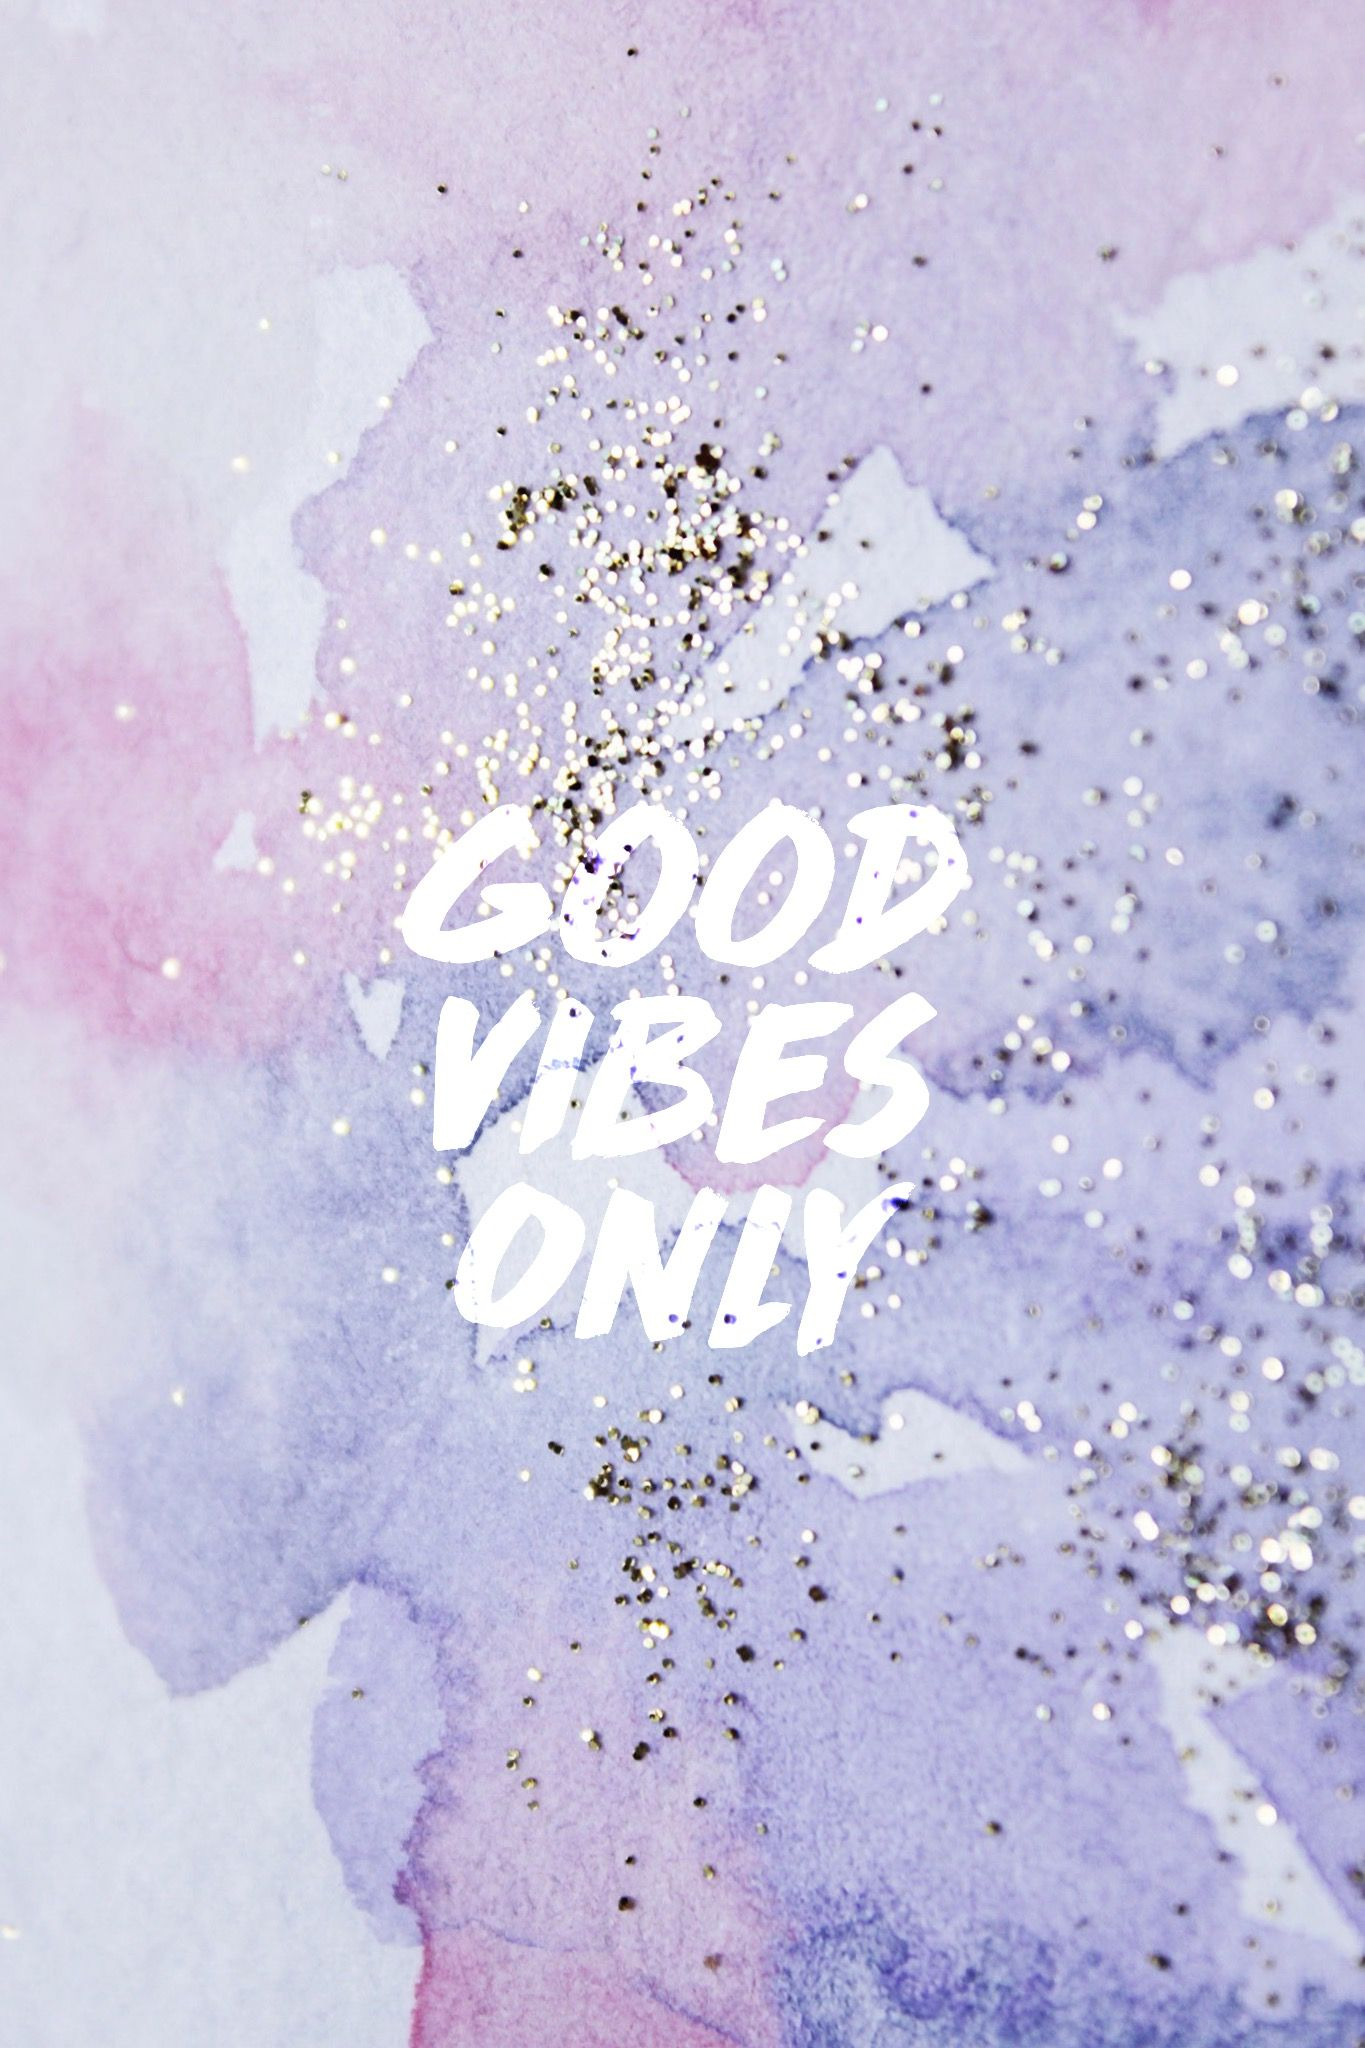 Good vibes madewithover download and edit your own iphone madewithover download and edit your own iphone wallpapers in over today voltagebd Images